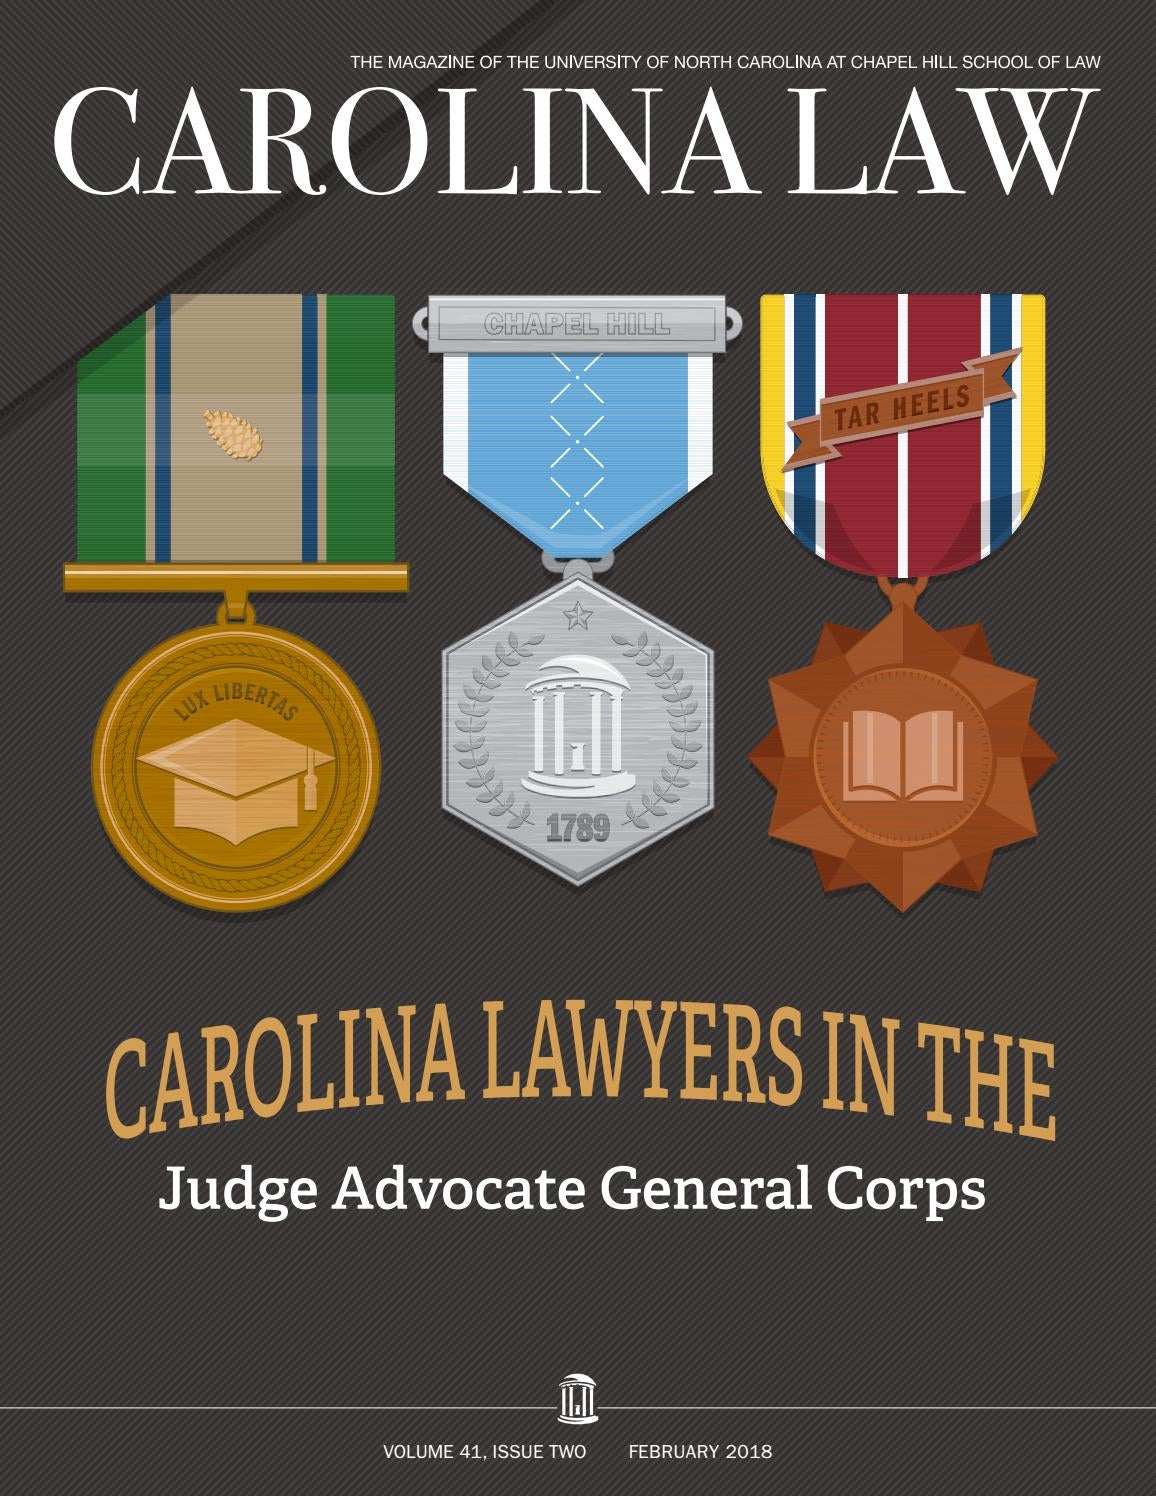 acf867b3795 Carolina Lawyers in the Judge Advocate General Corps (February 2018) by UNC  School of Law - issuu